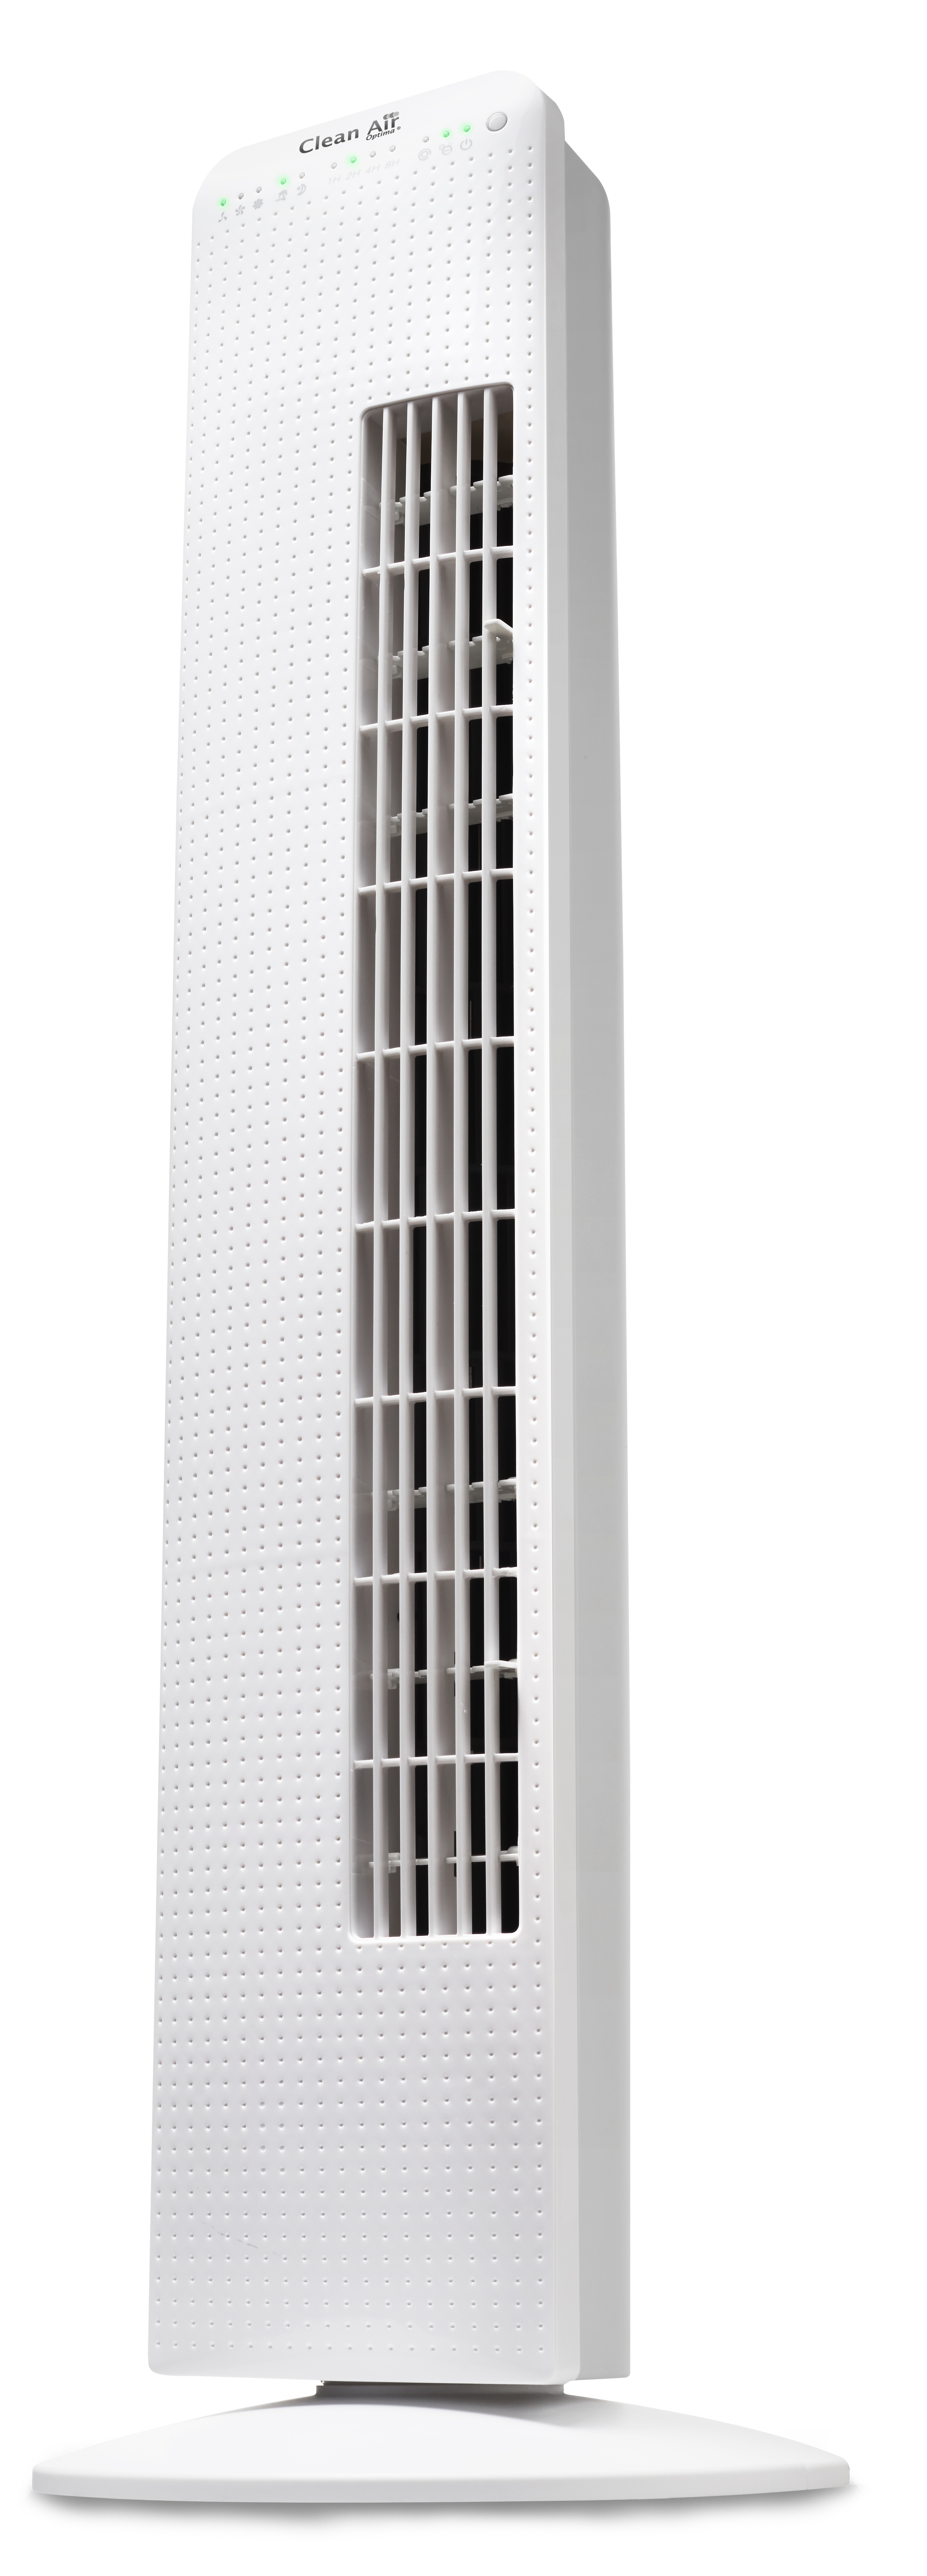 Luxery Tower Fan with Ionizer CA-405 - Air Purifiers Air Cleaners ...